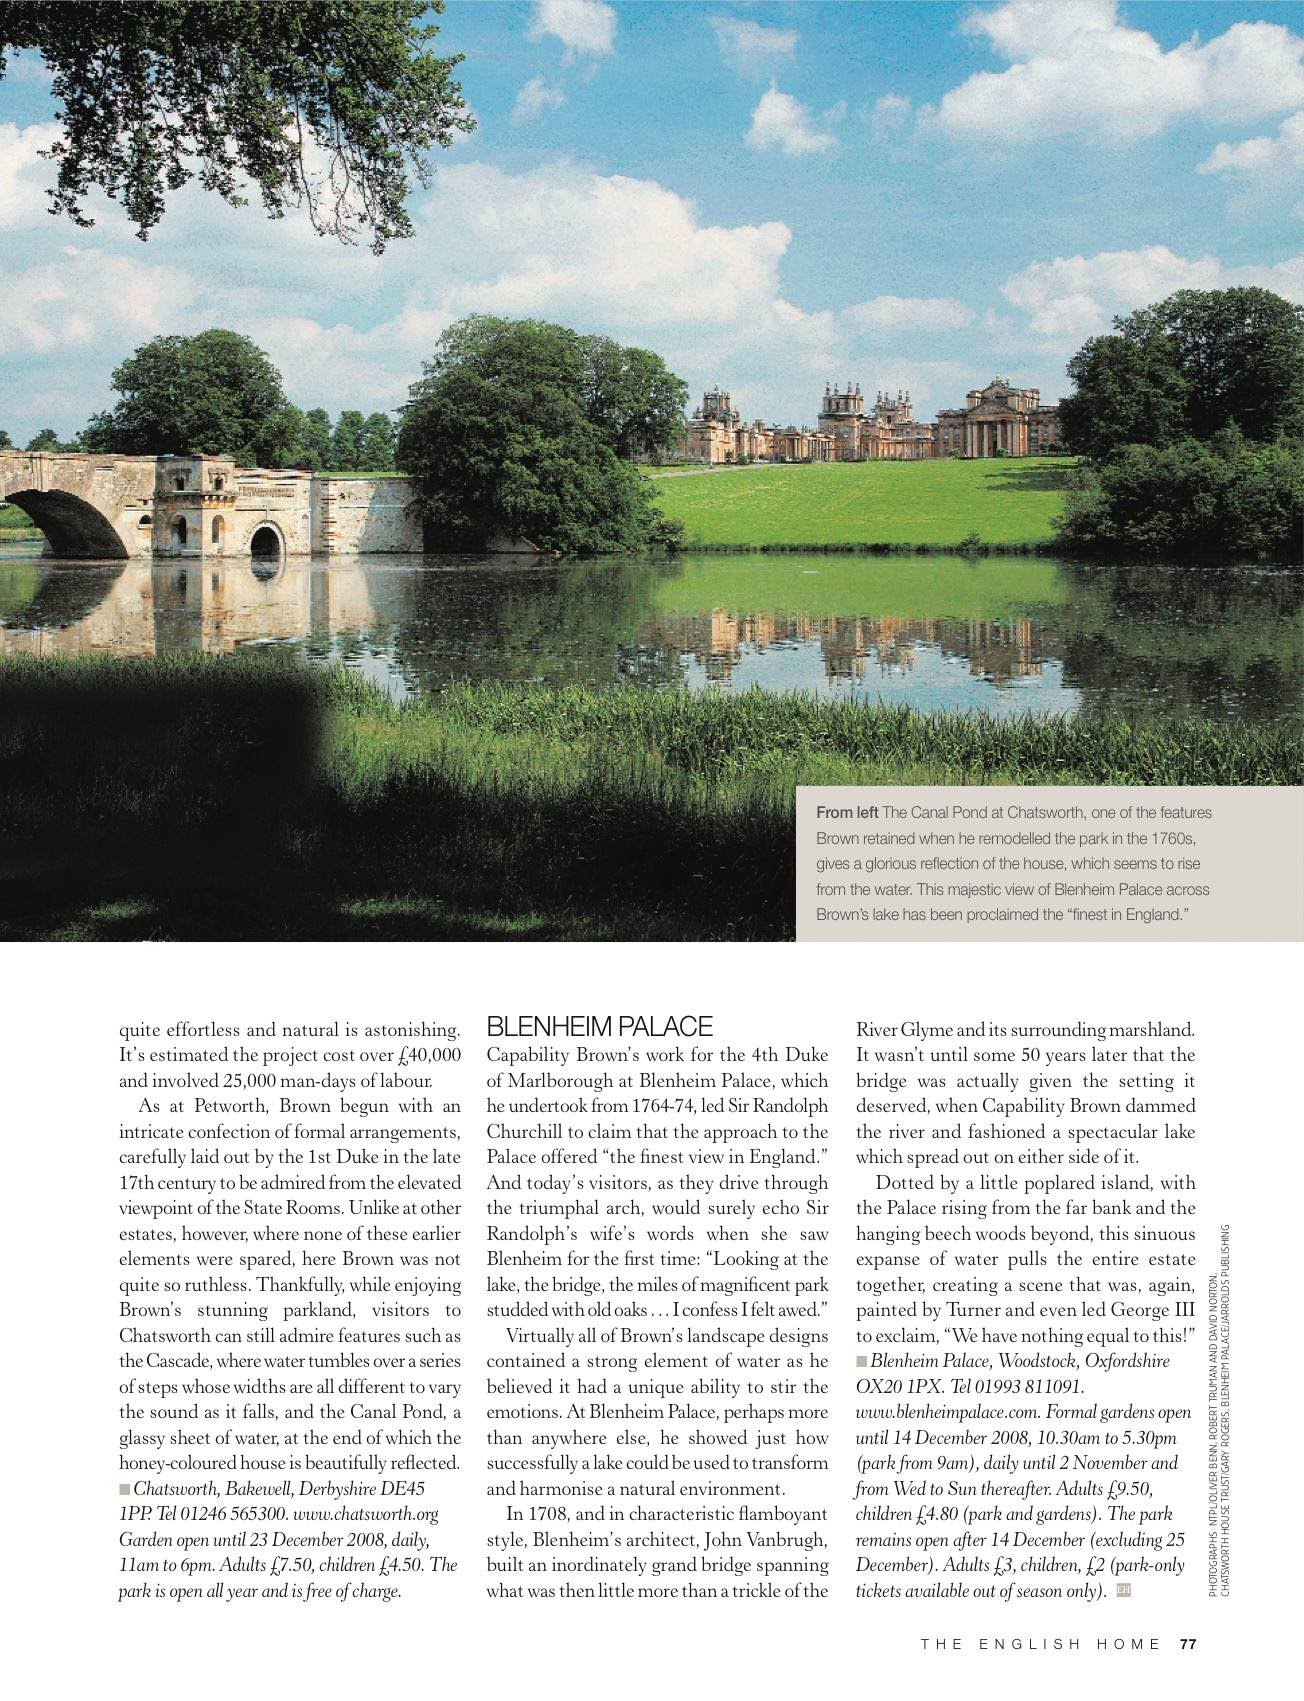 History harrietpaige for Capability brown garden designs